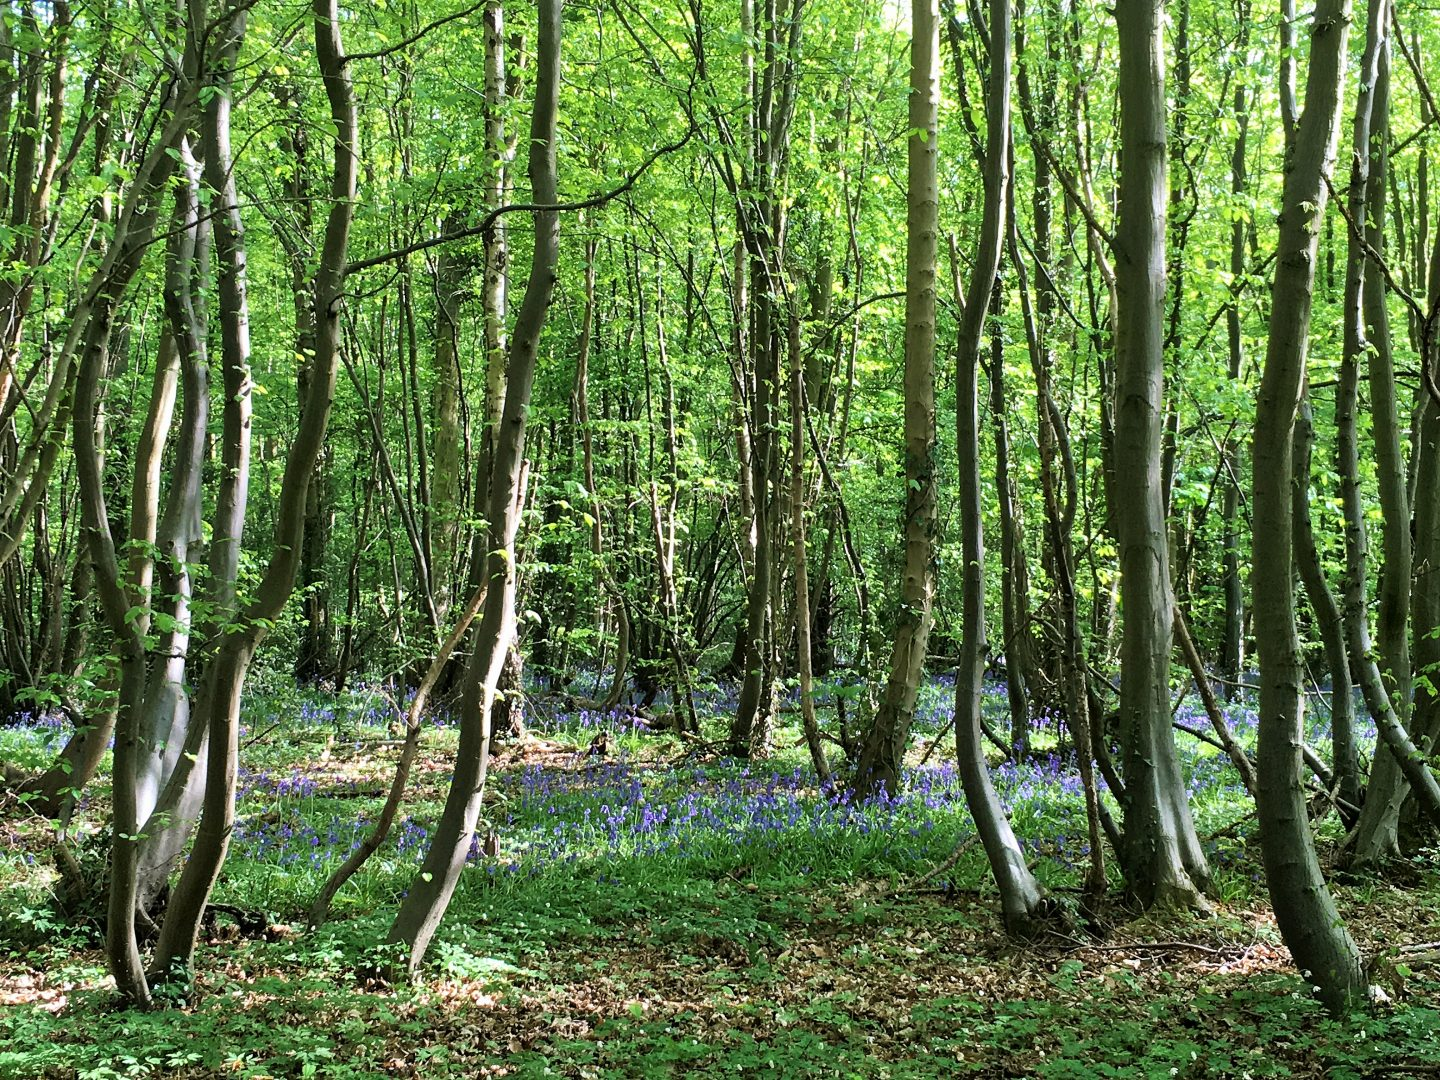 Bluebells in Hertfordshire